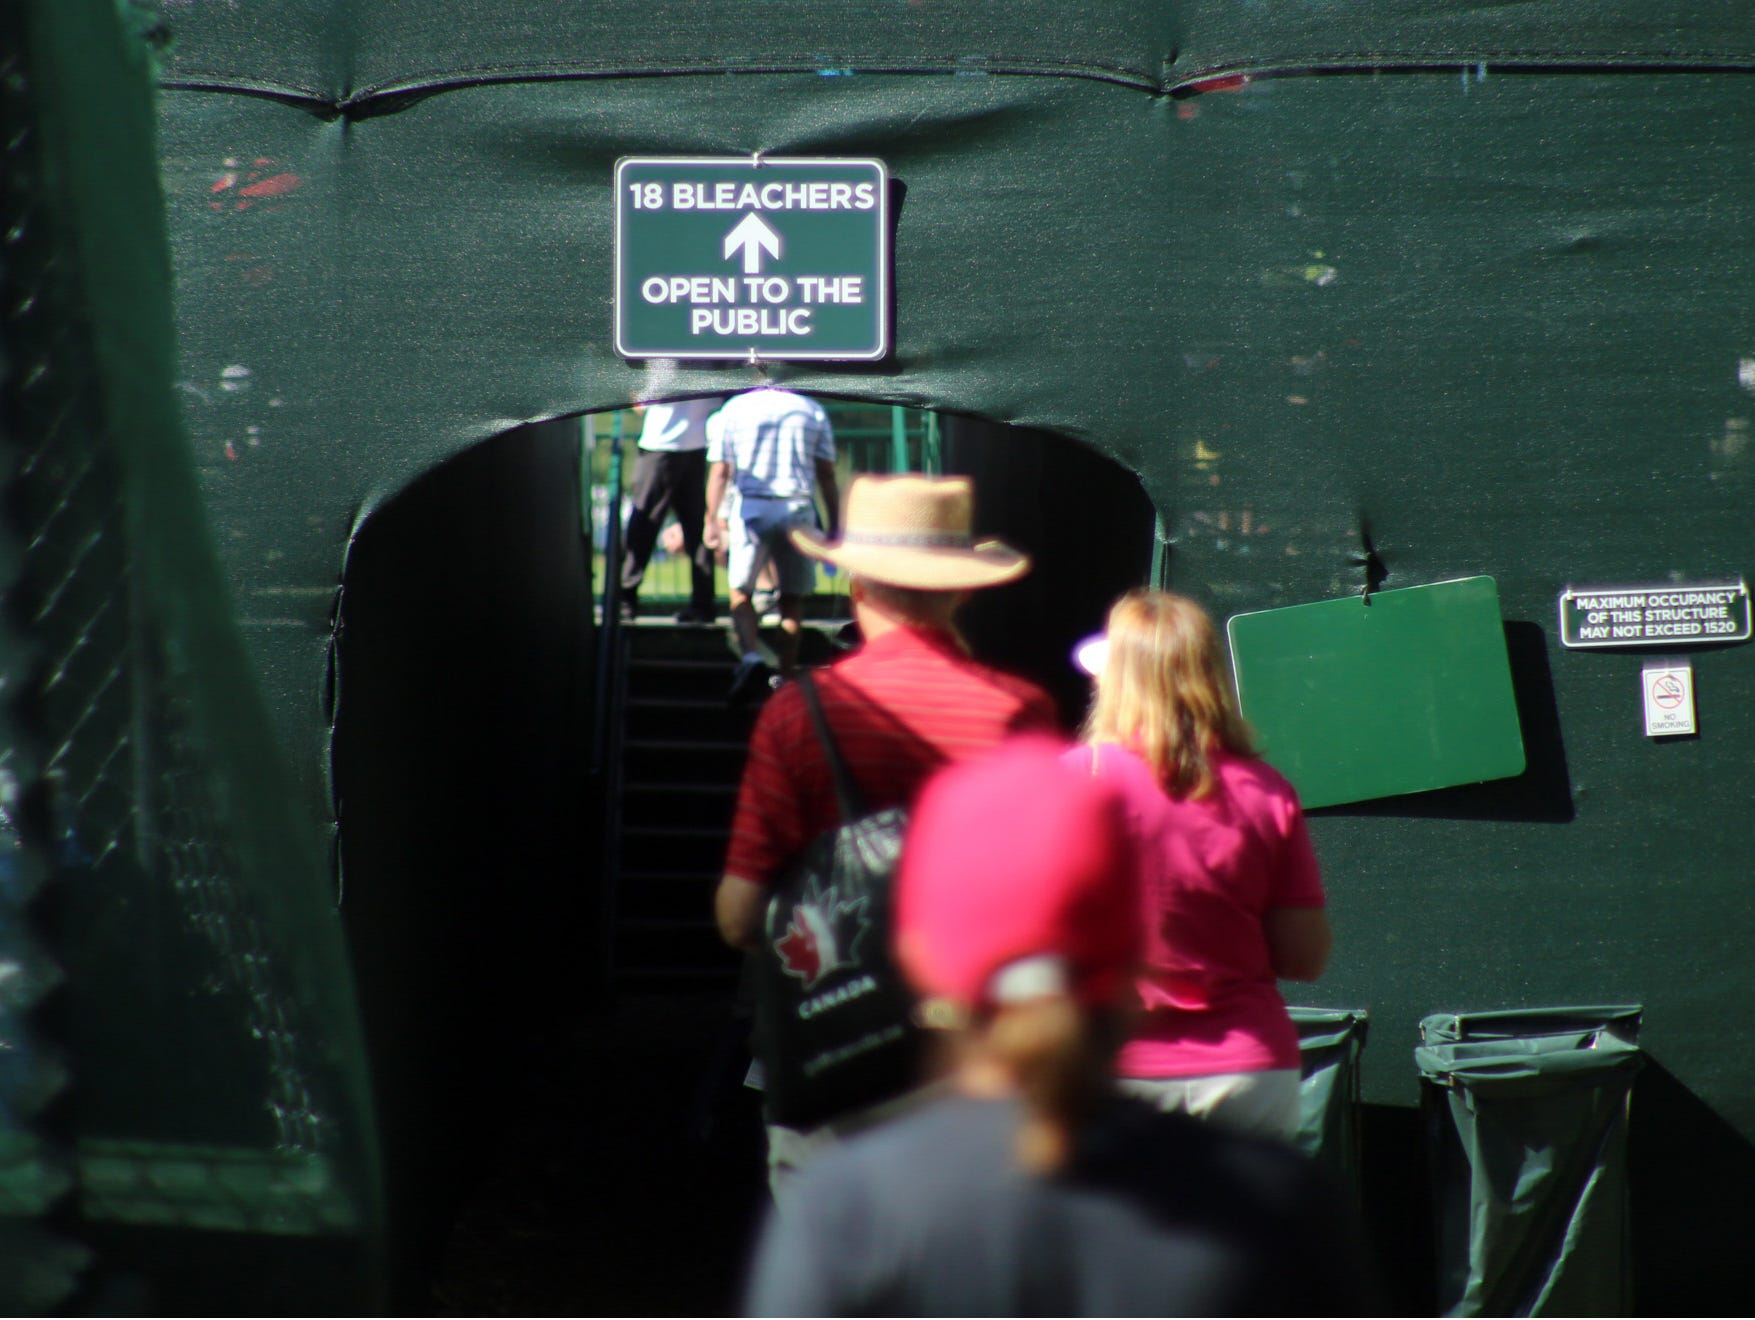 Fans enter the grandstands on the 18th green.